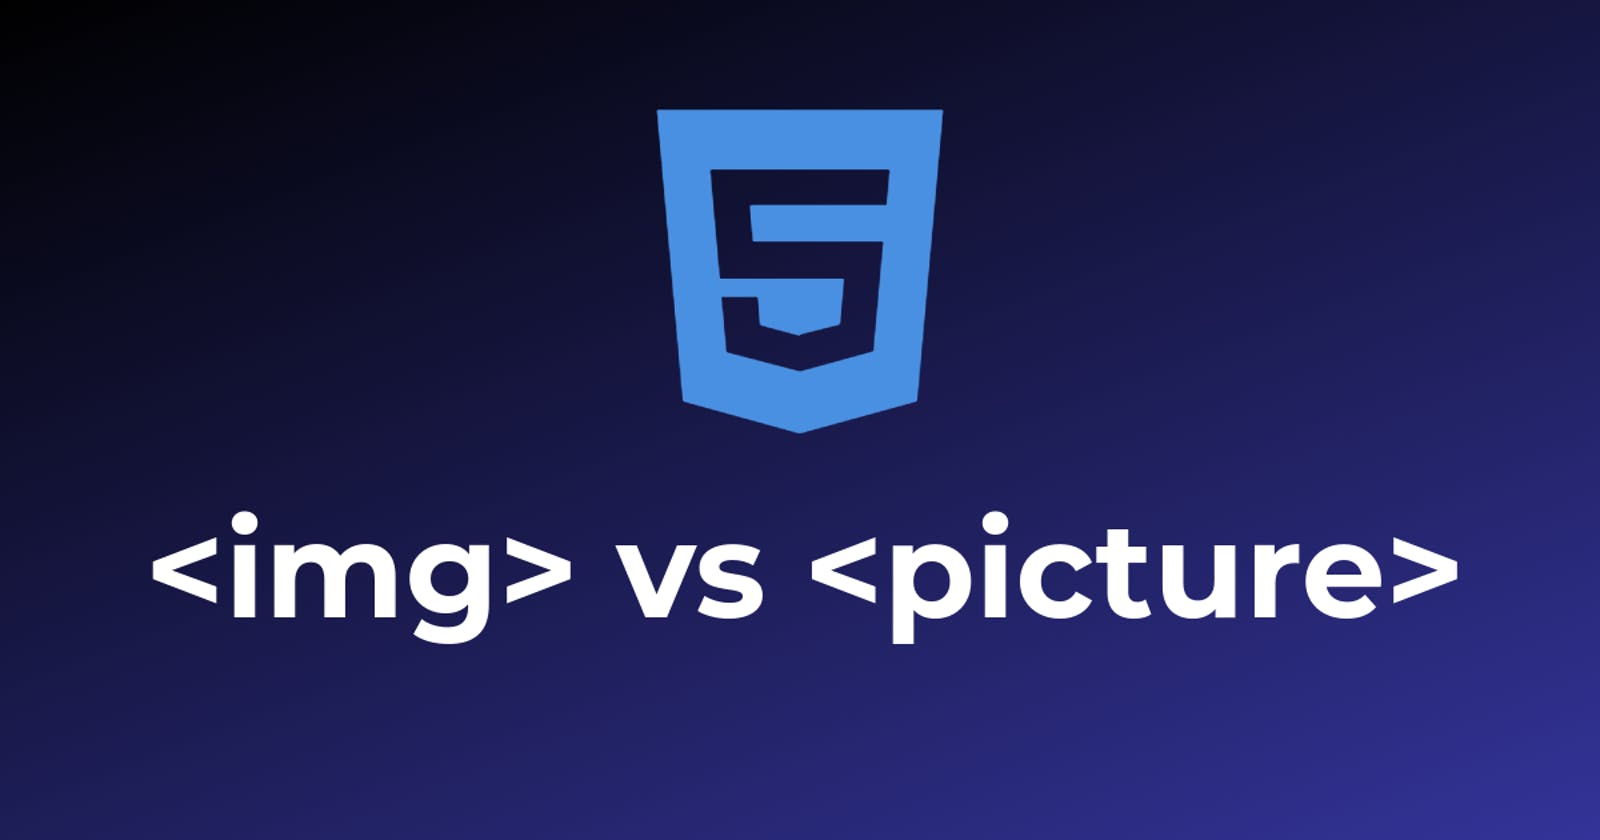 Responsive images. What to use: img or picture?